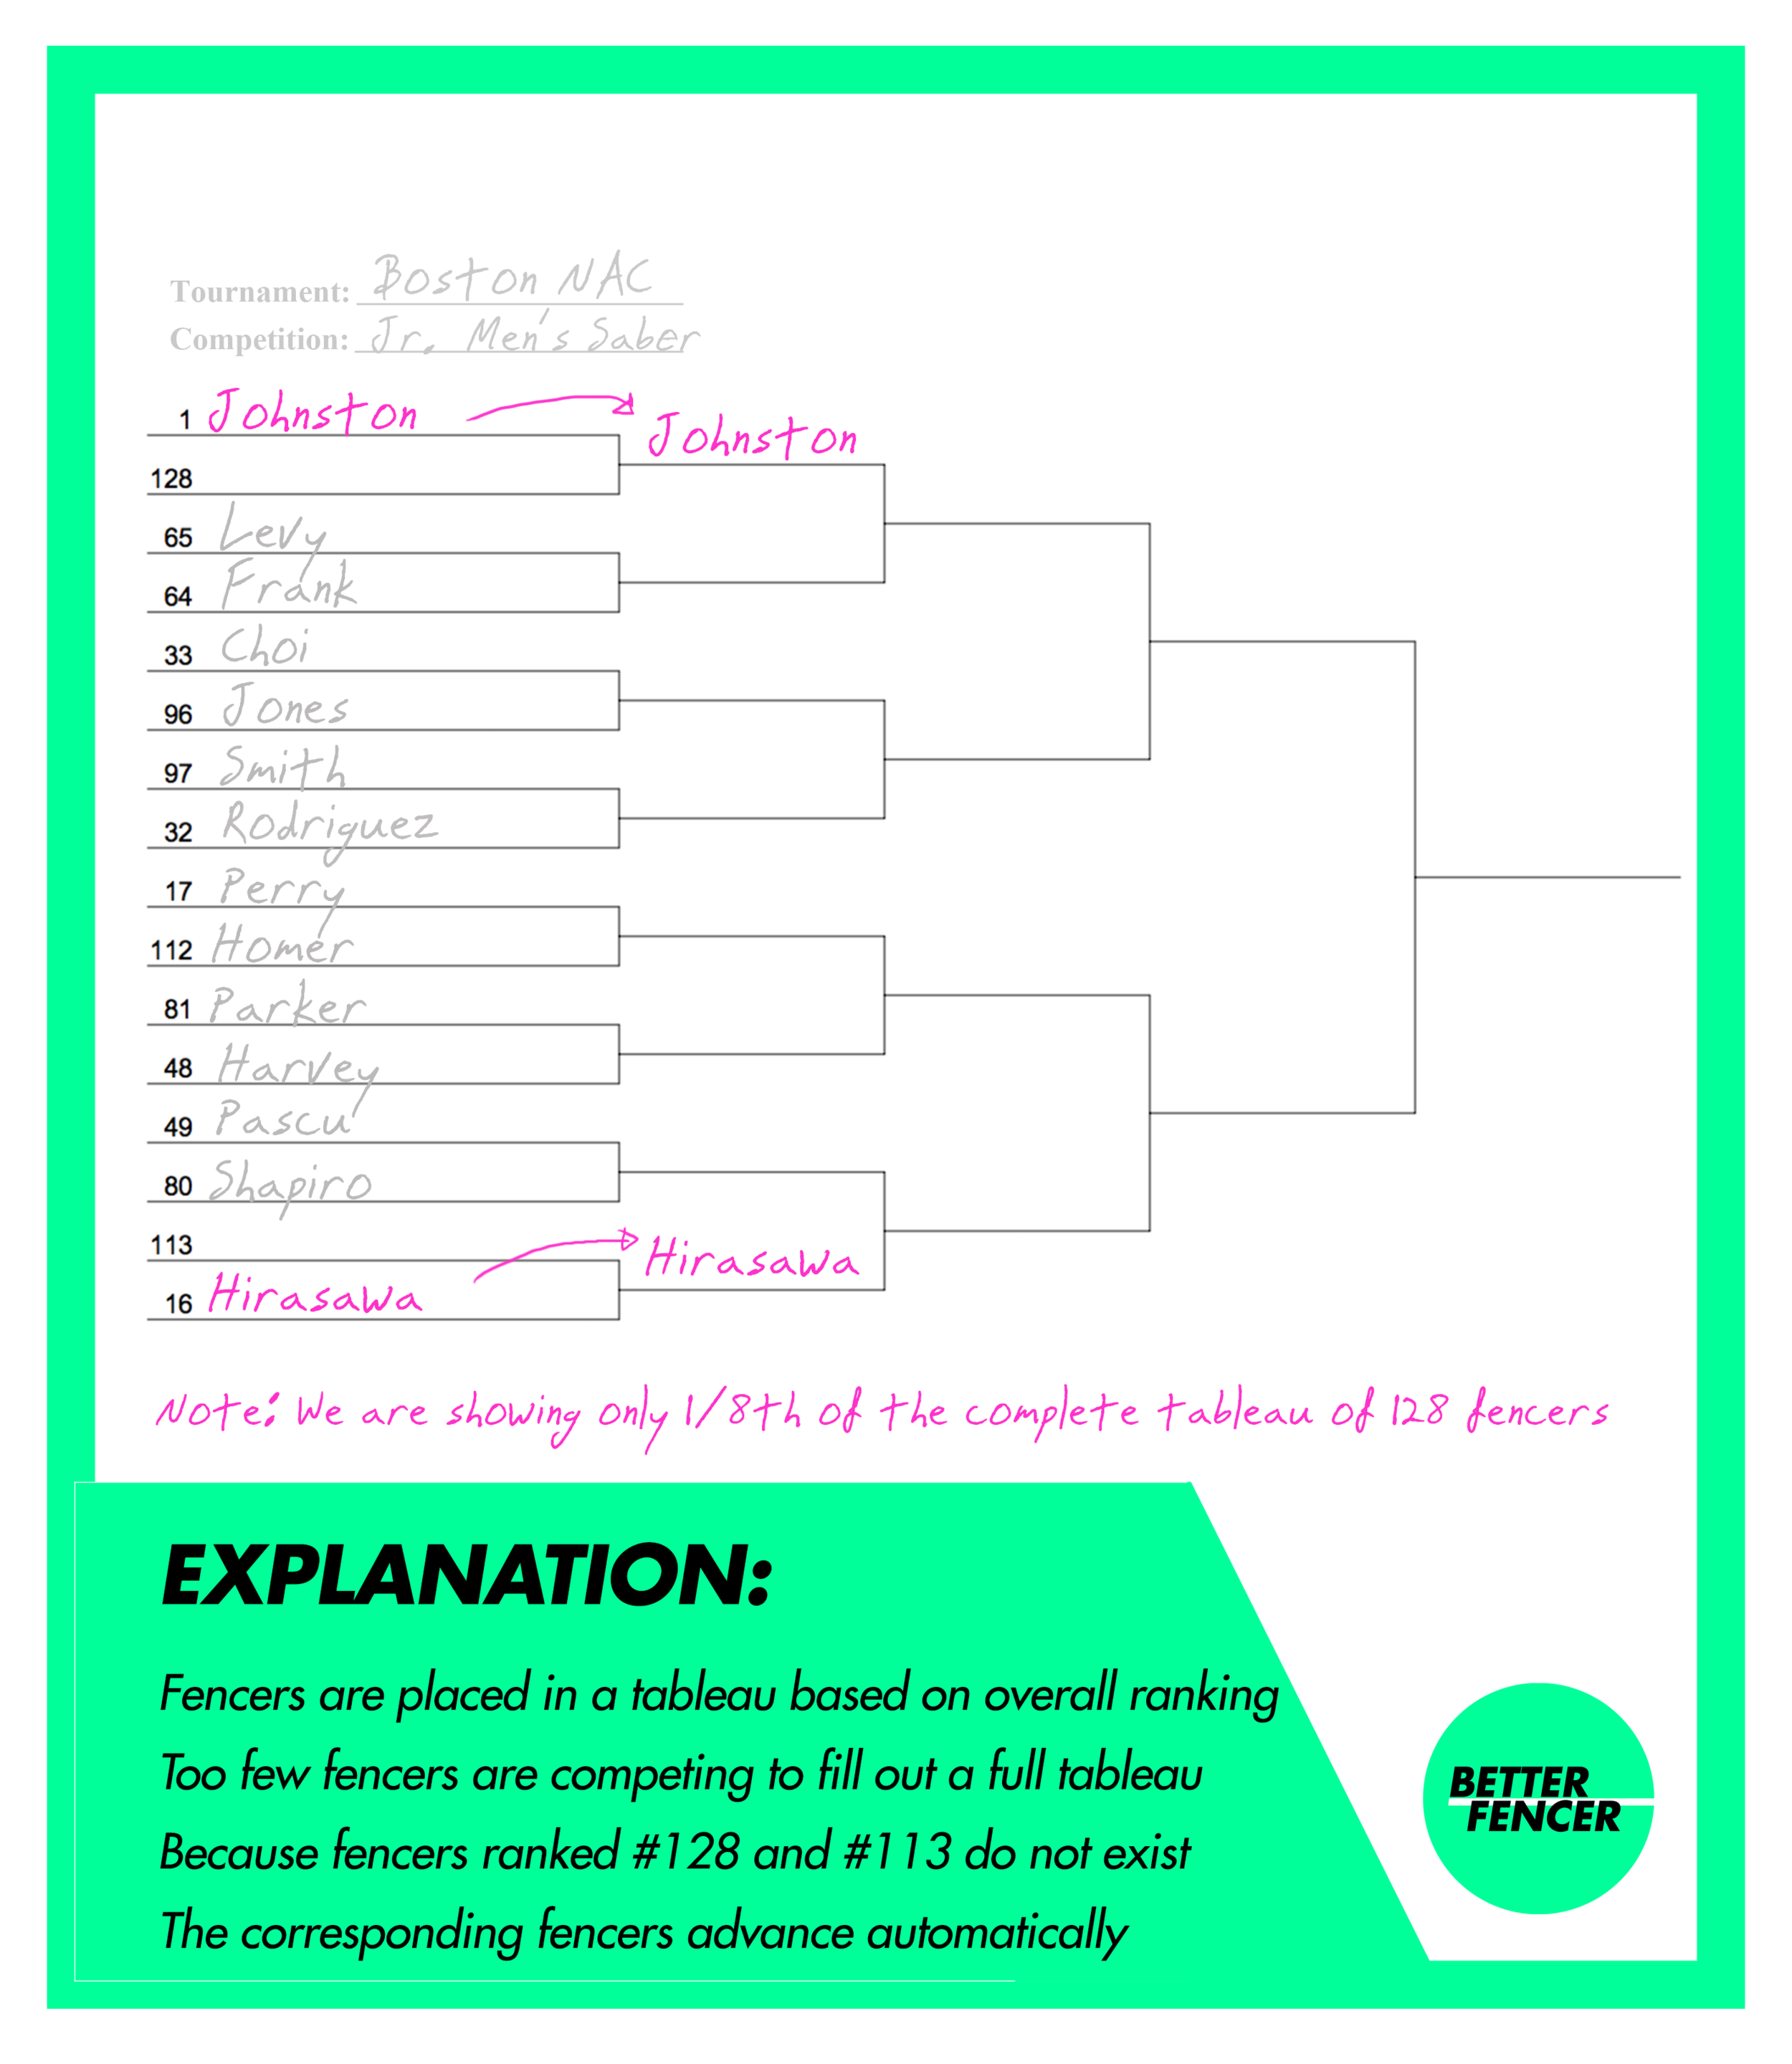 Fencing bracket showing how seeds are distributed and how byes are given for the highest ranked fencers